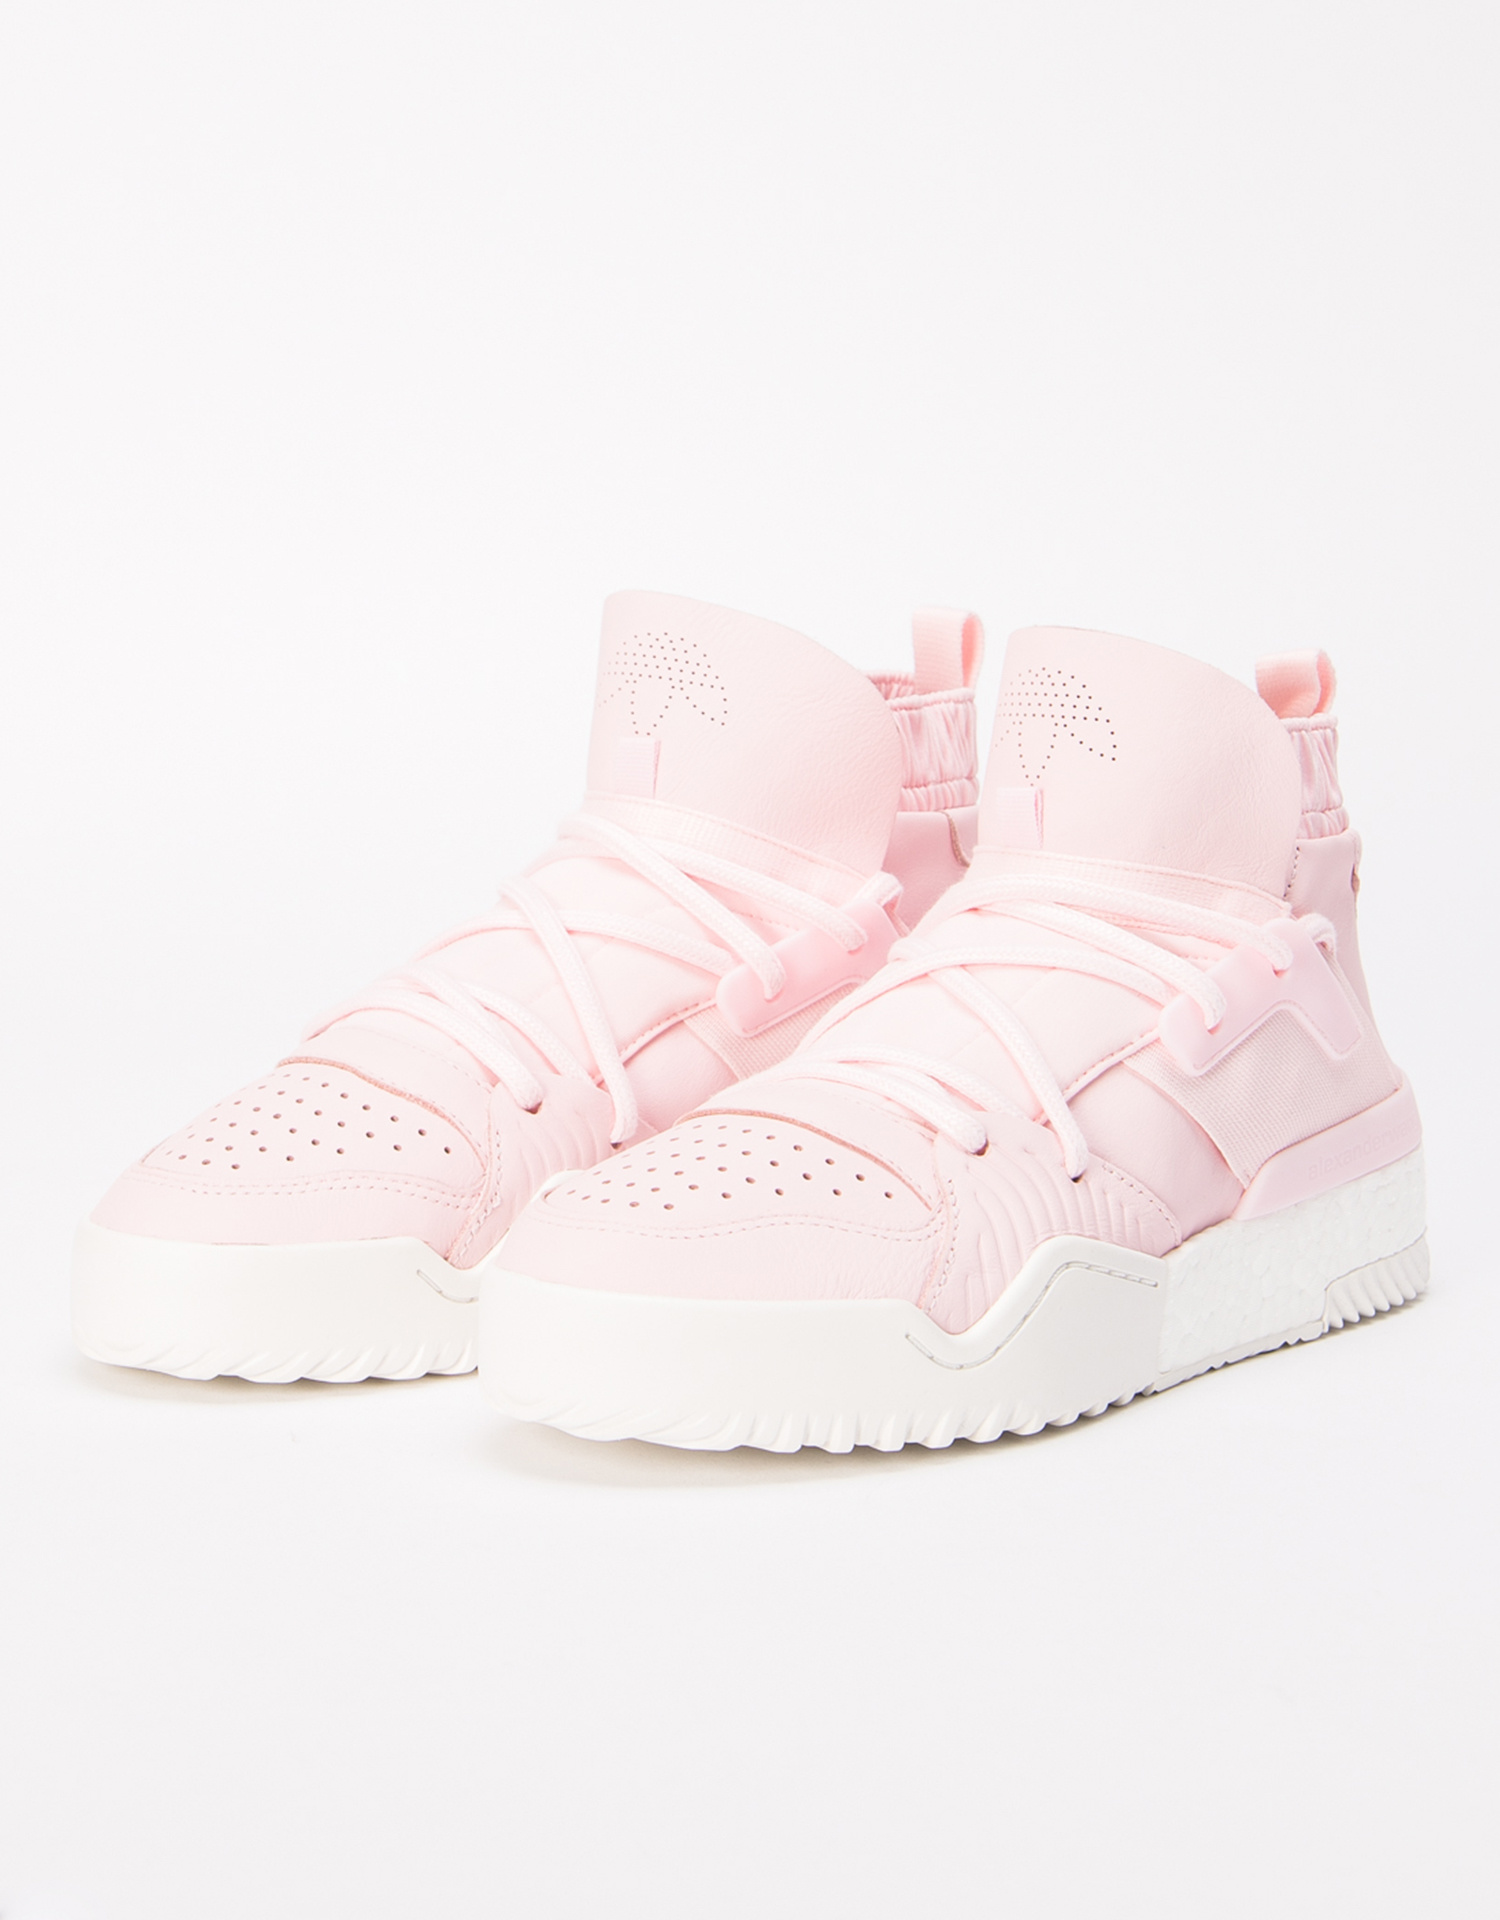 a9043d0258ff Alexander Wang X Adidas BBall CLEAR PINK CLEAR PINK CORE WHITE - Avenue  Store